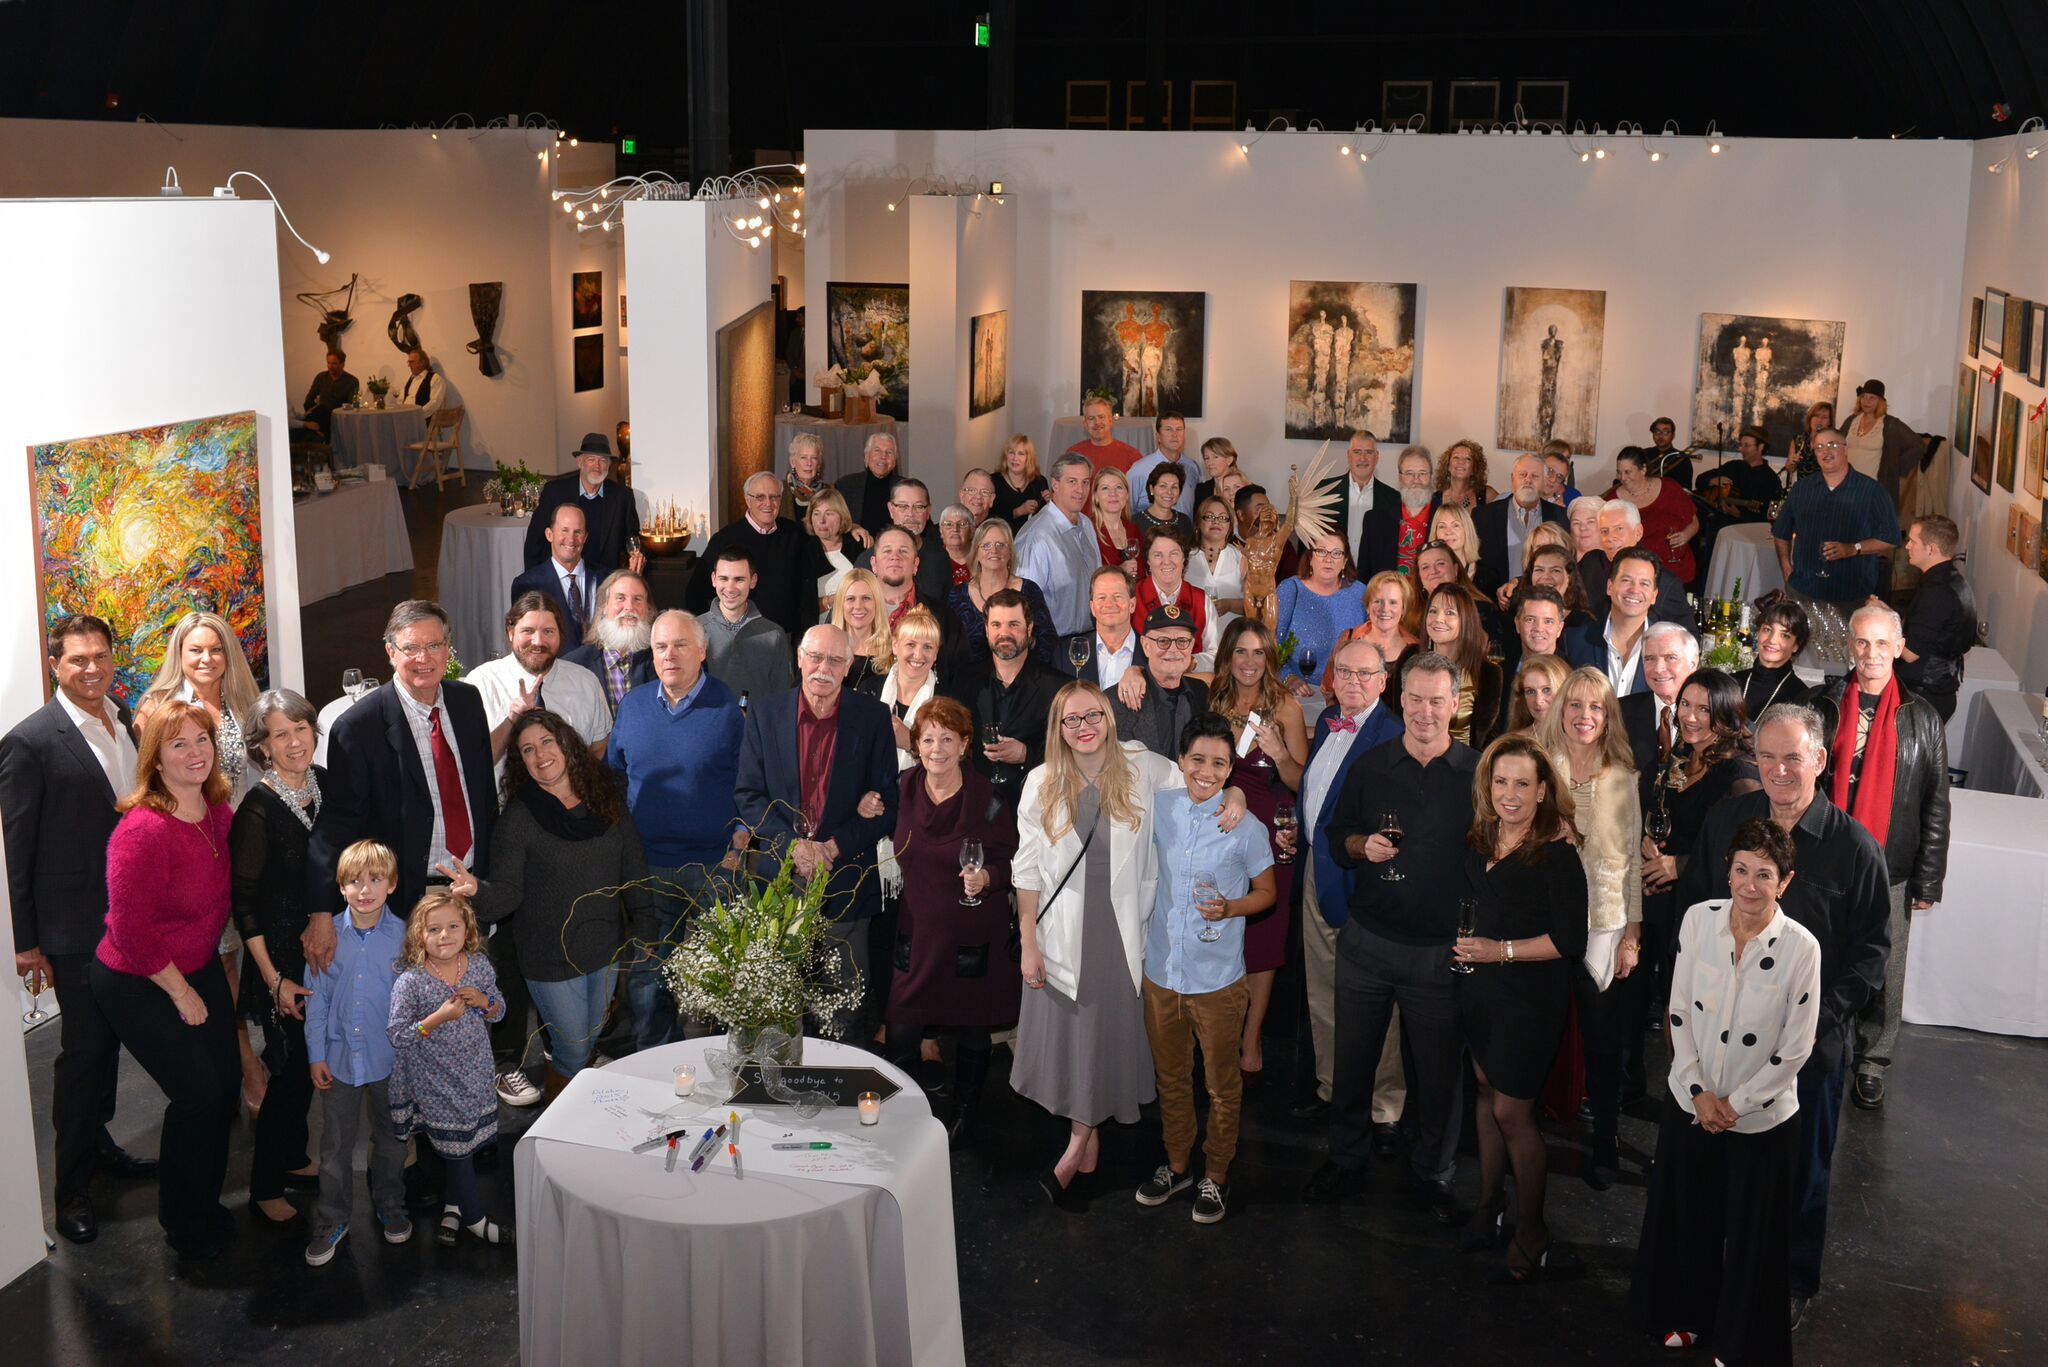 Photo #5 Paul Mahder Gallery at Paul Mahder Gallery